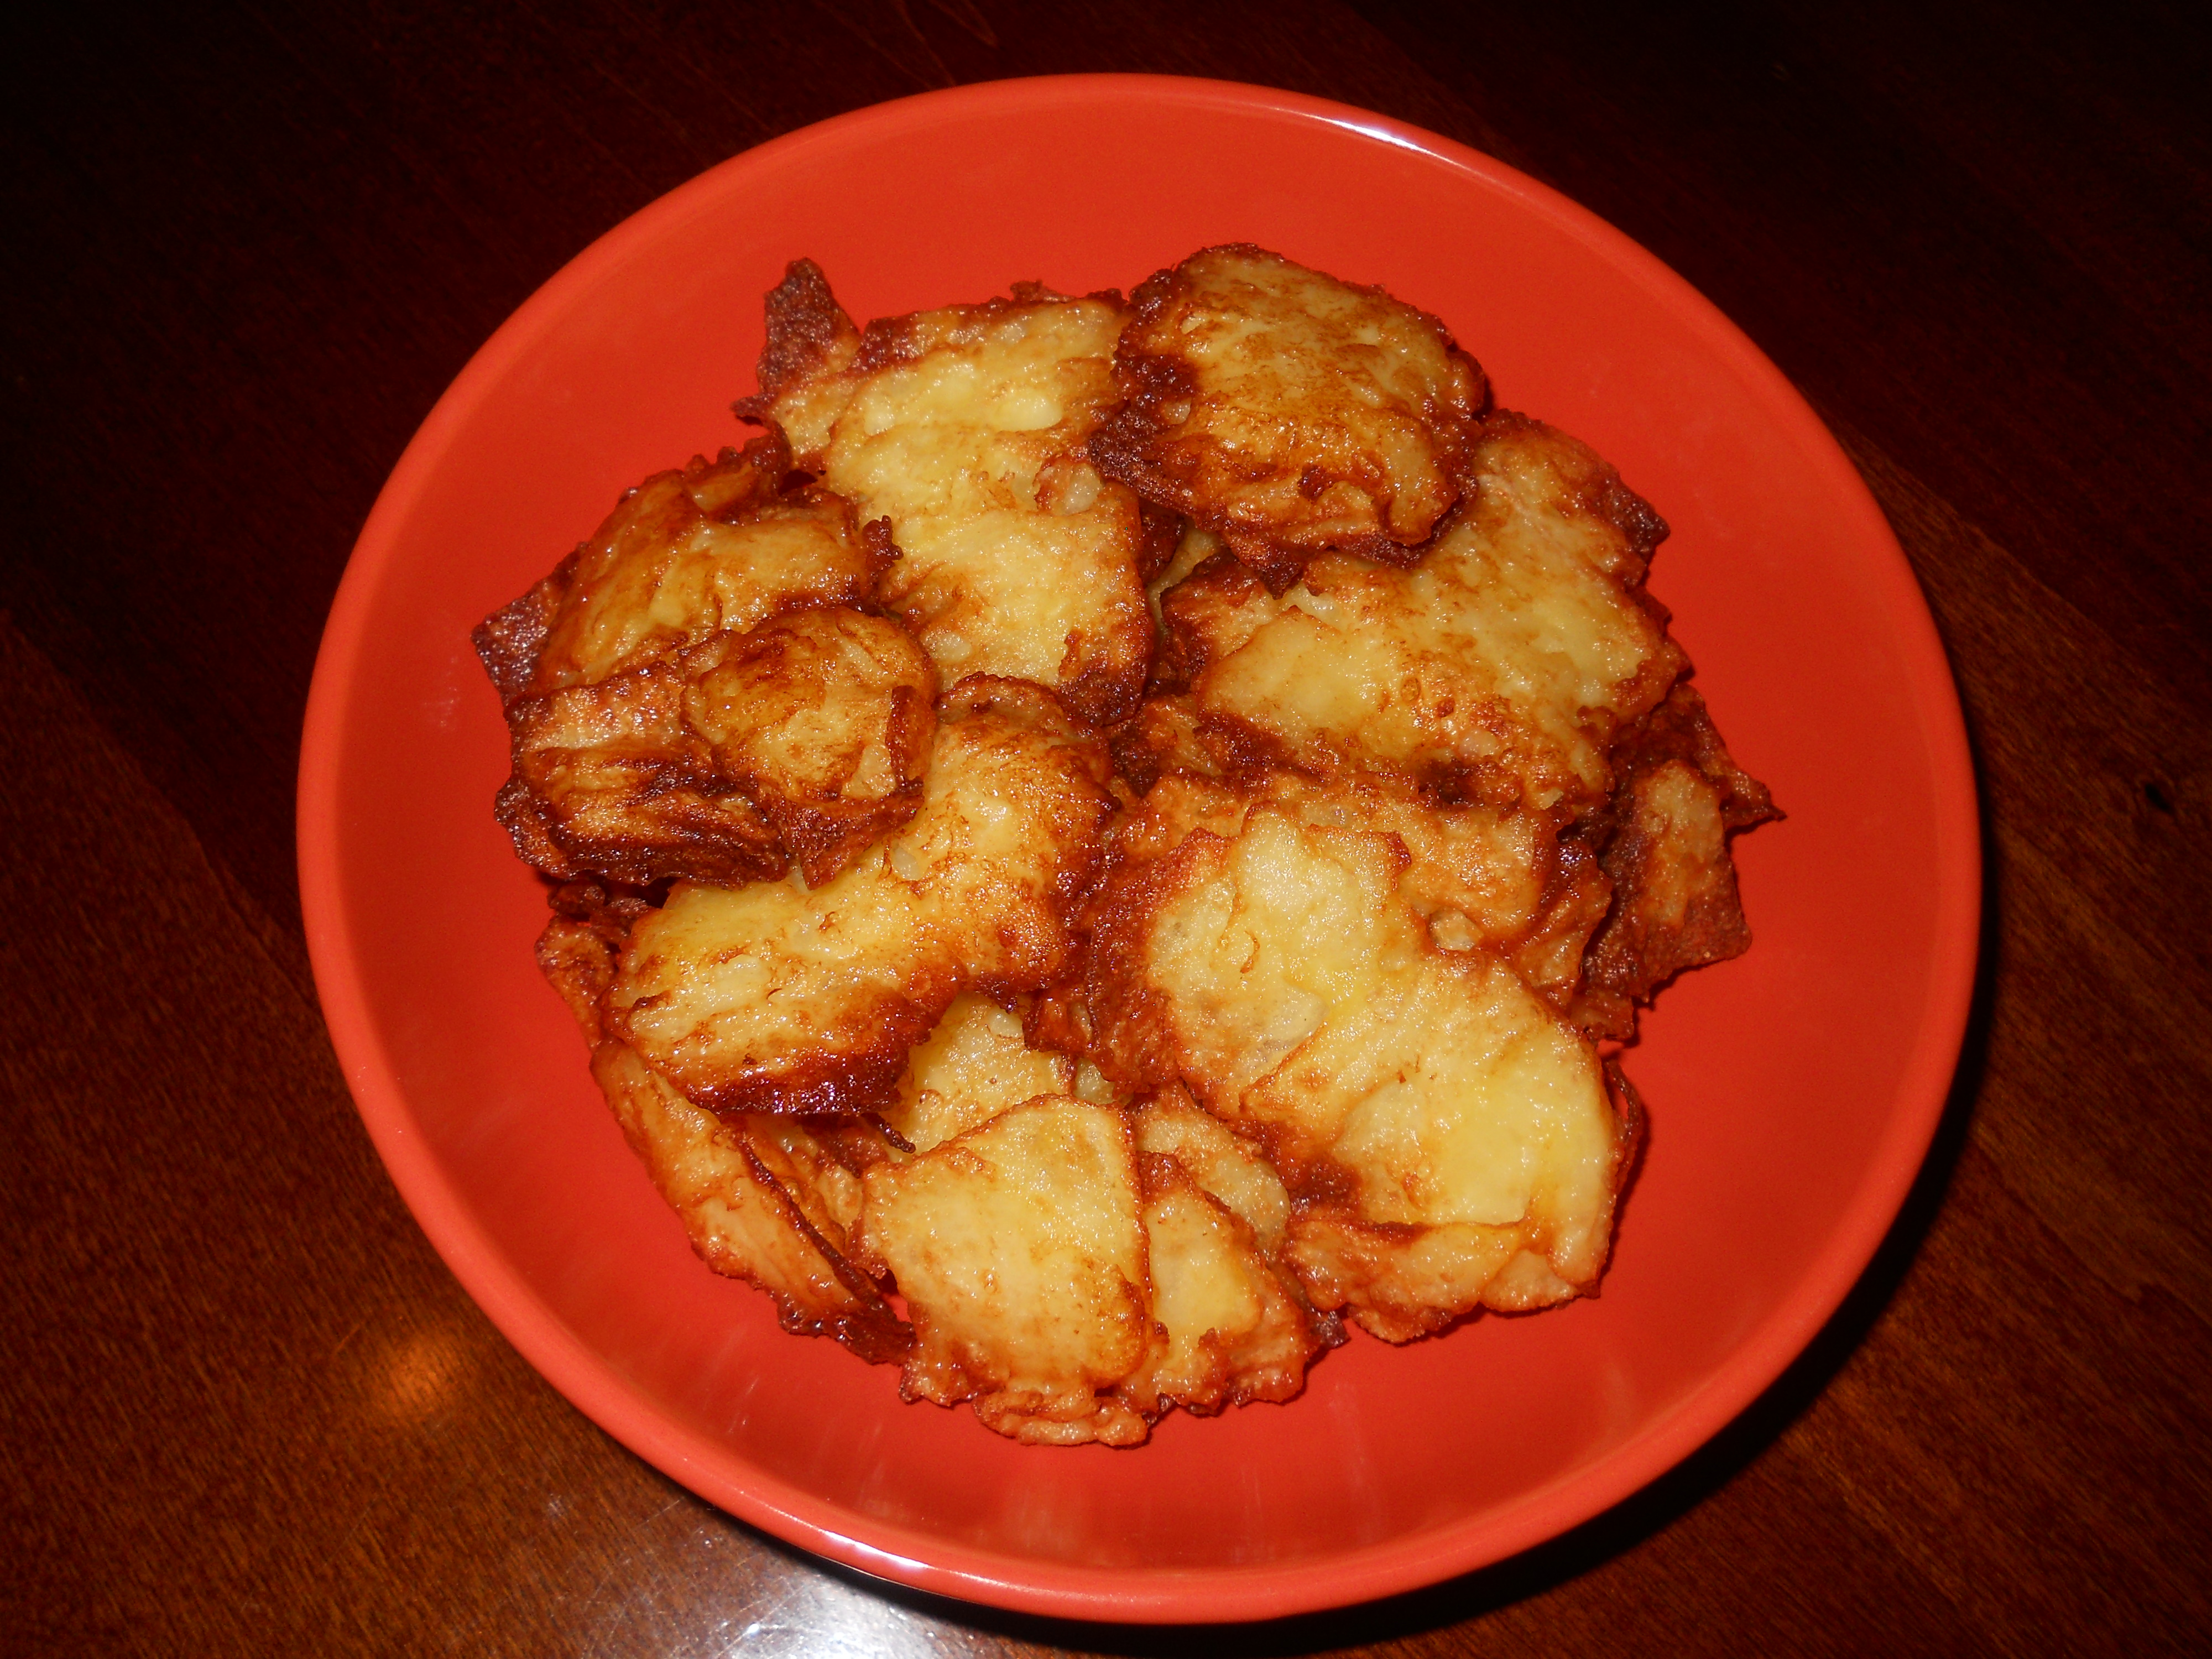 le mie frittelle di patate